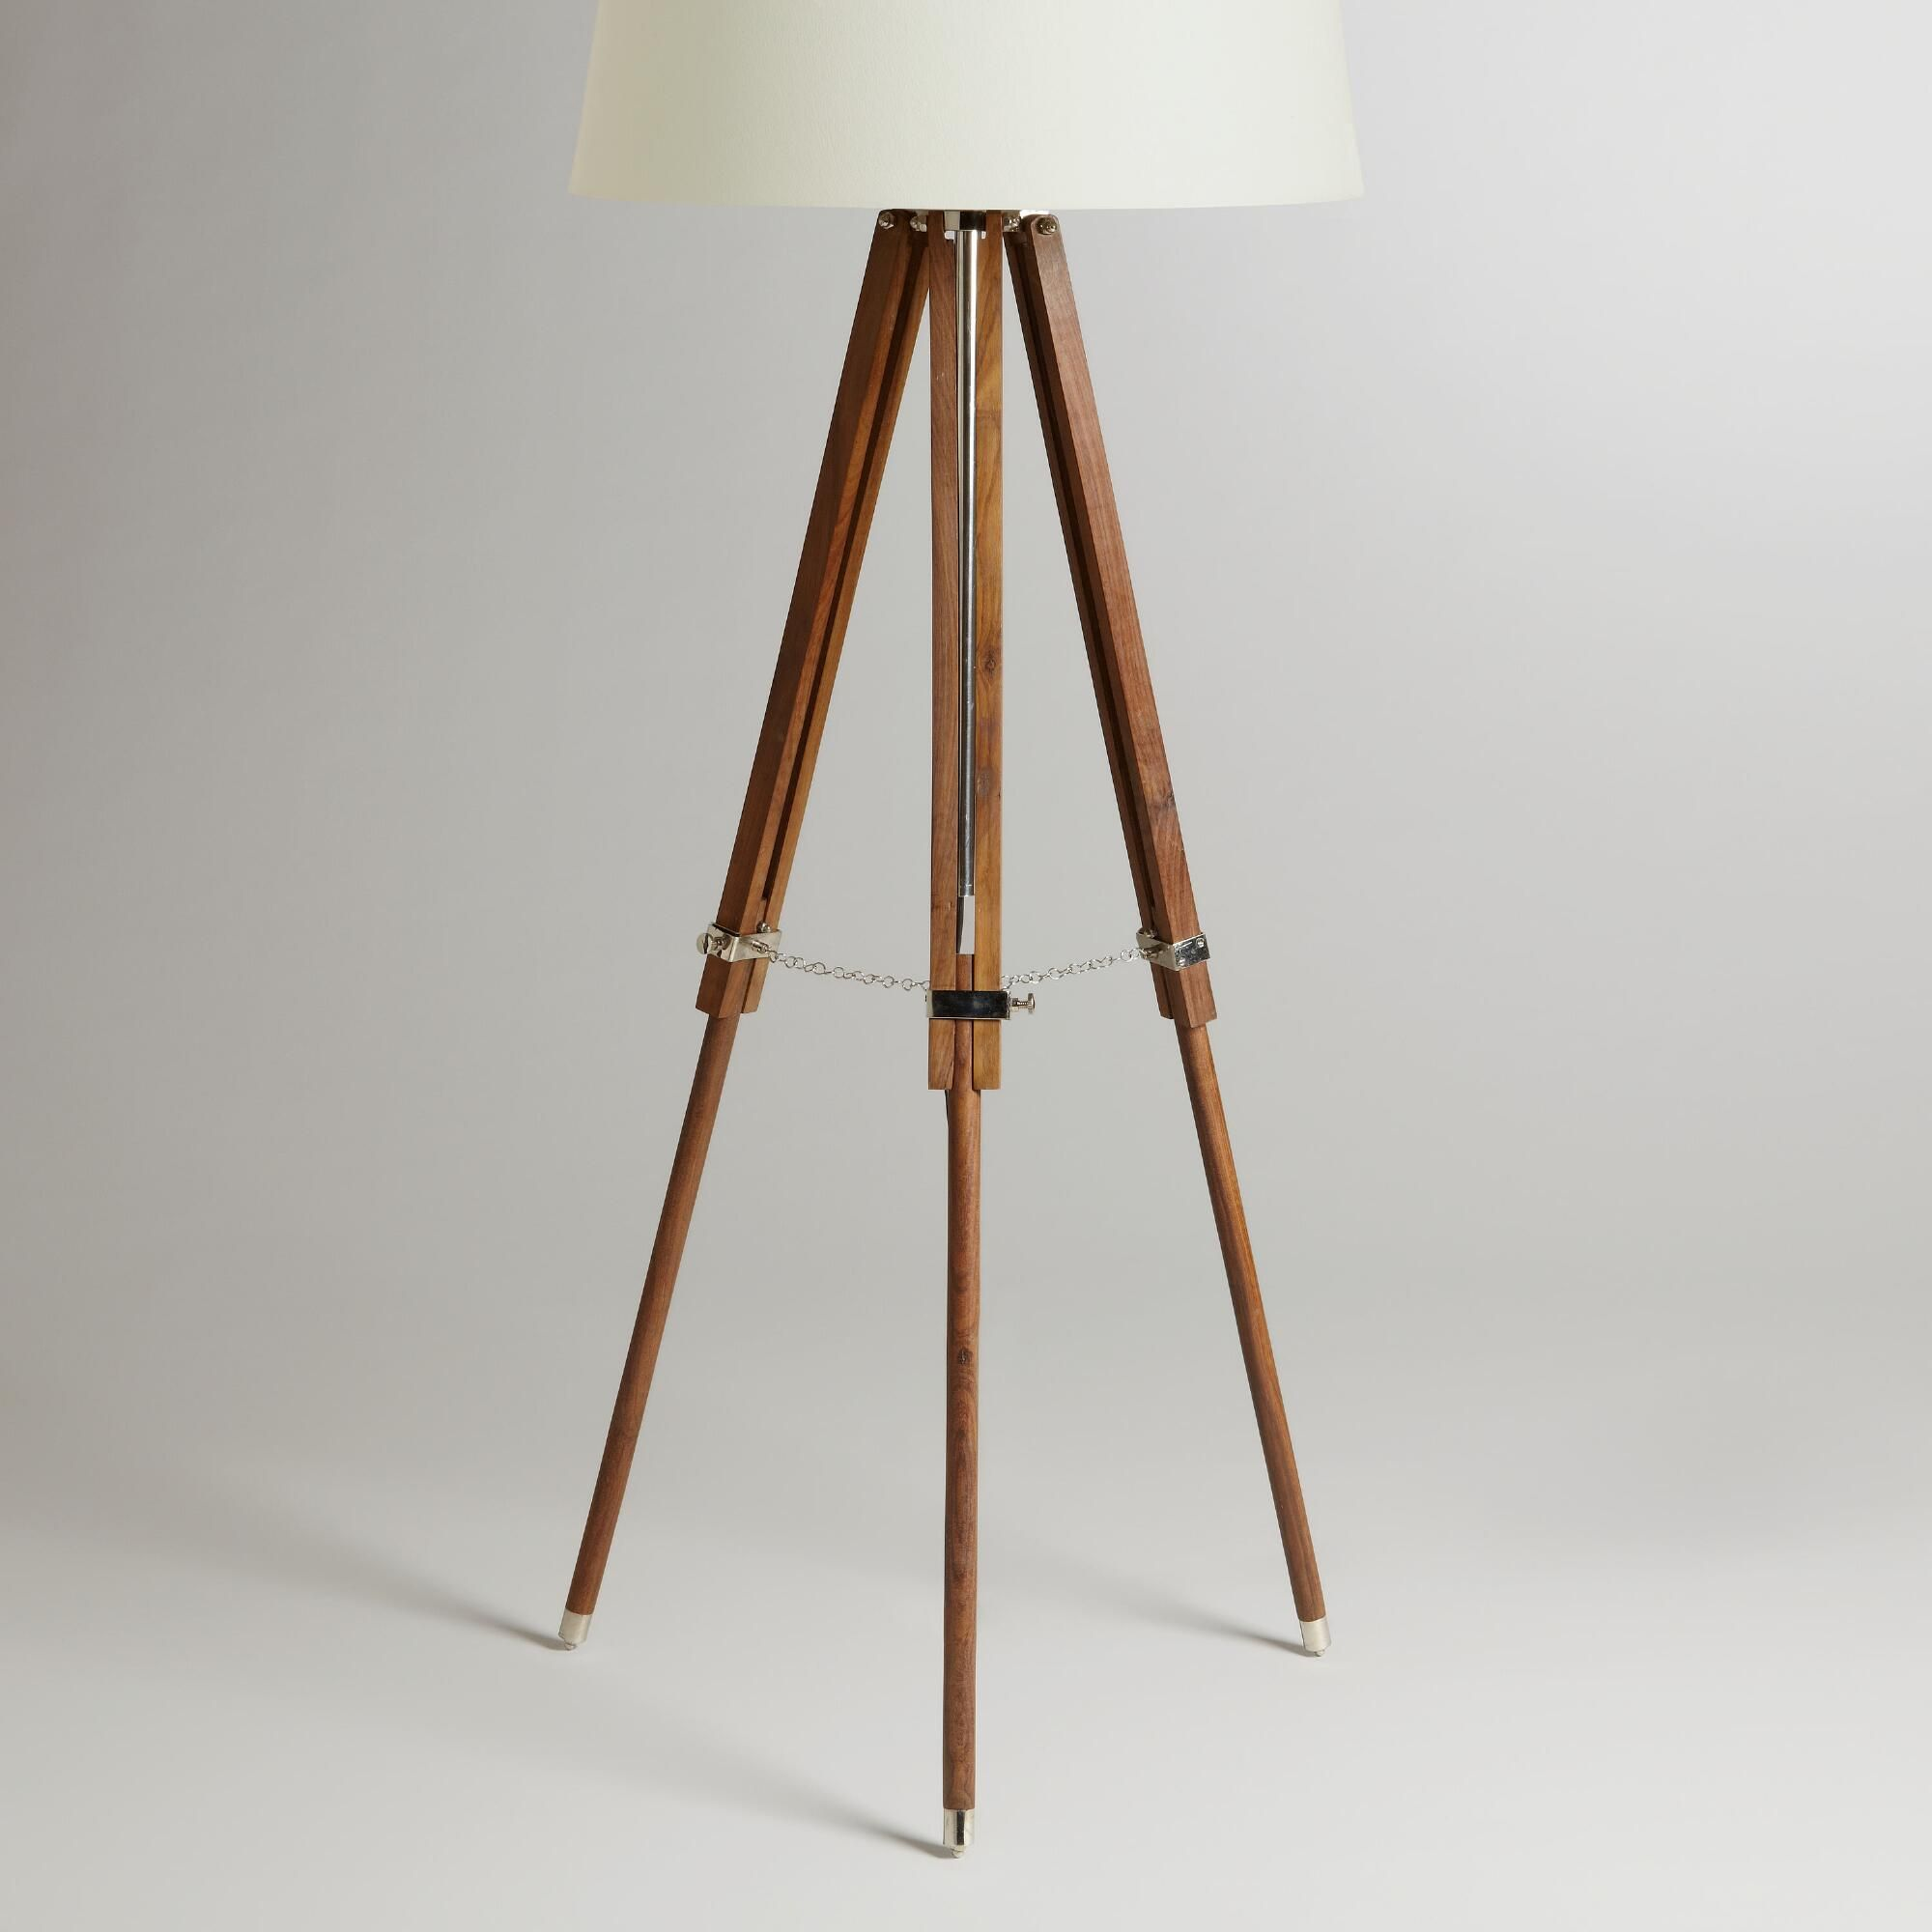 Telescope floor lamp base world marketout of stock online telescope floor lamp base world marketout of stock online aloadofball Choice Image